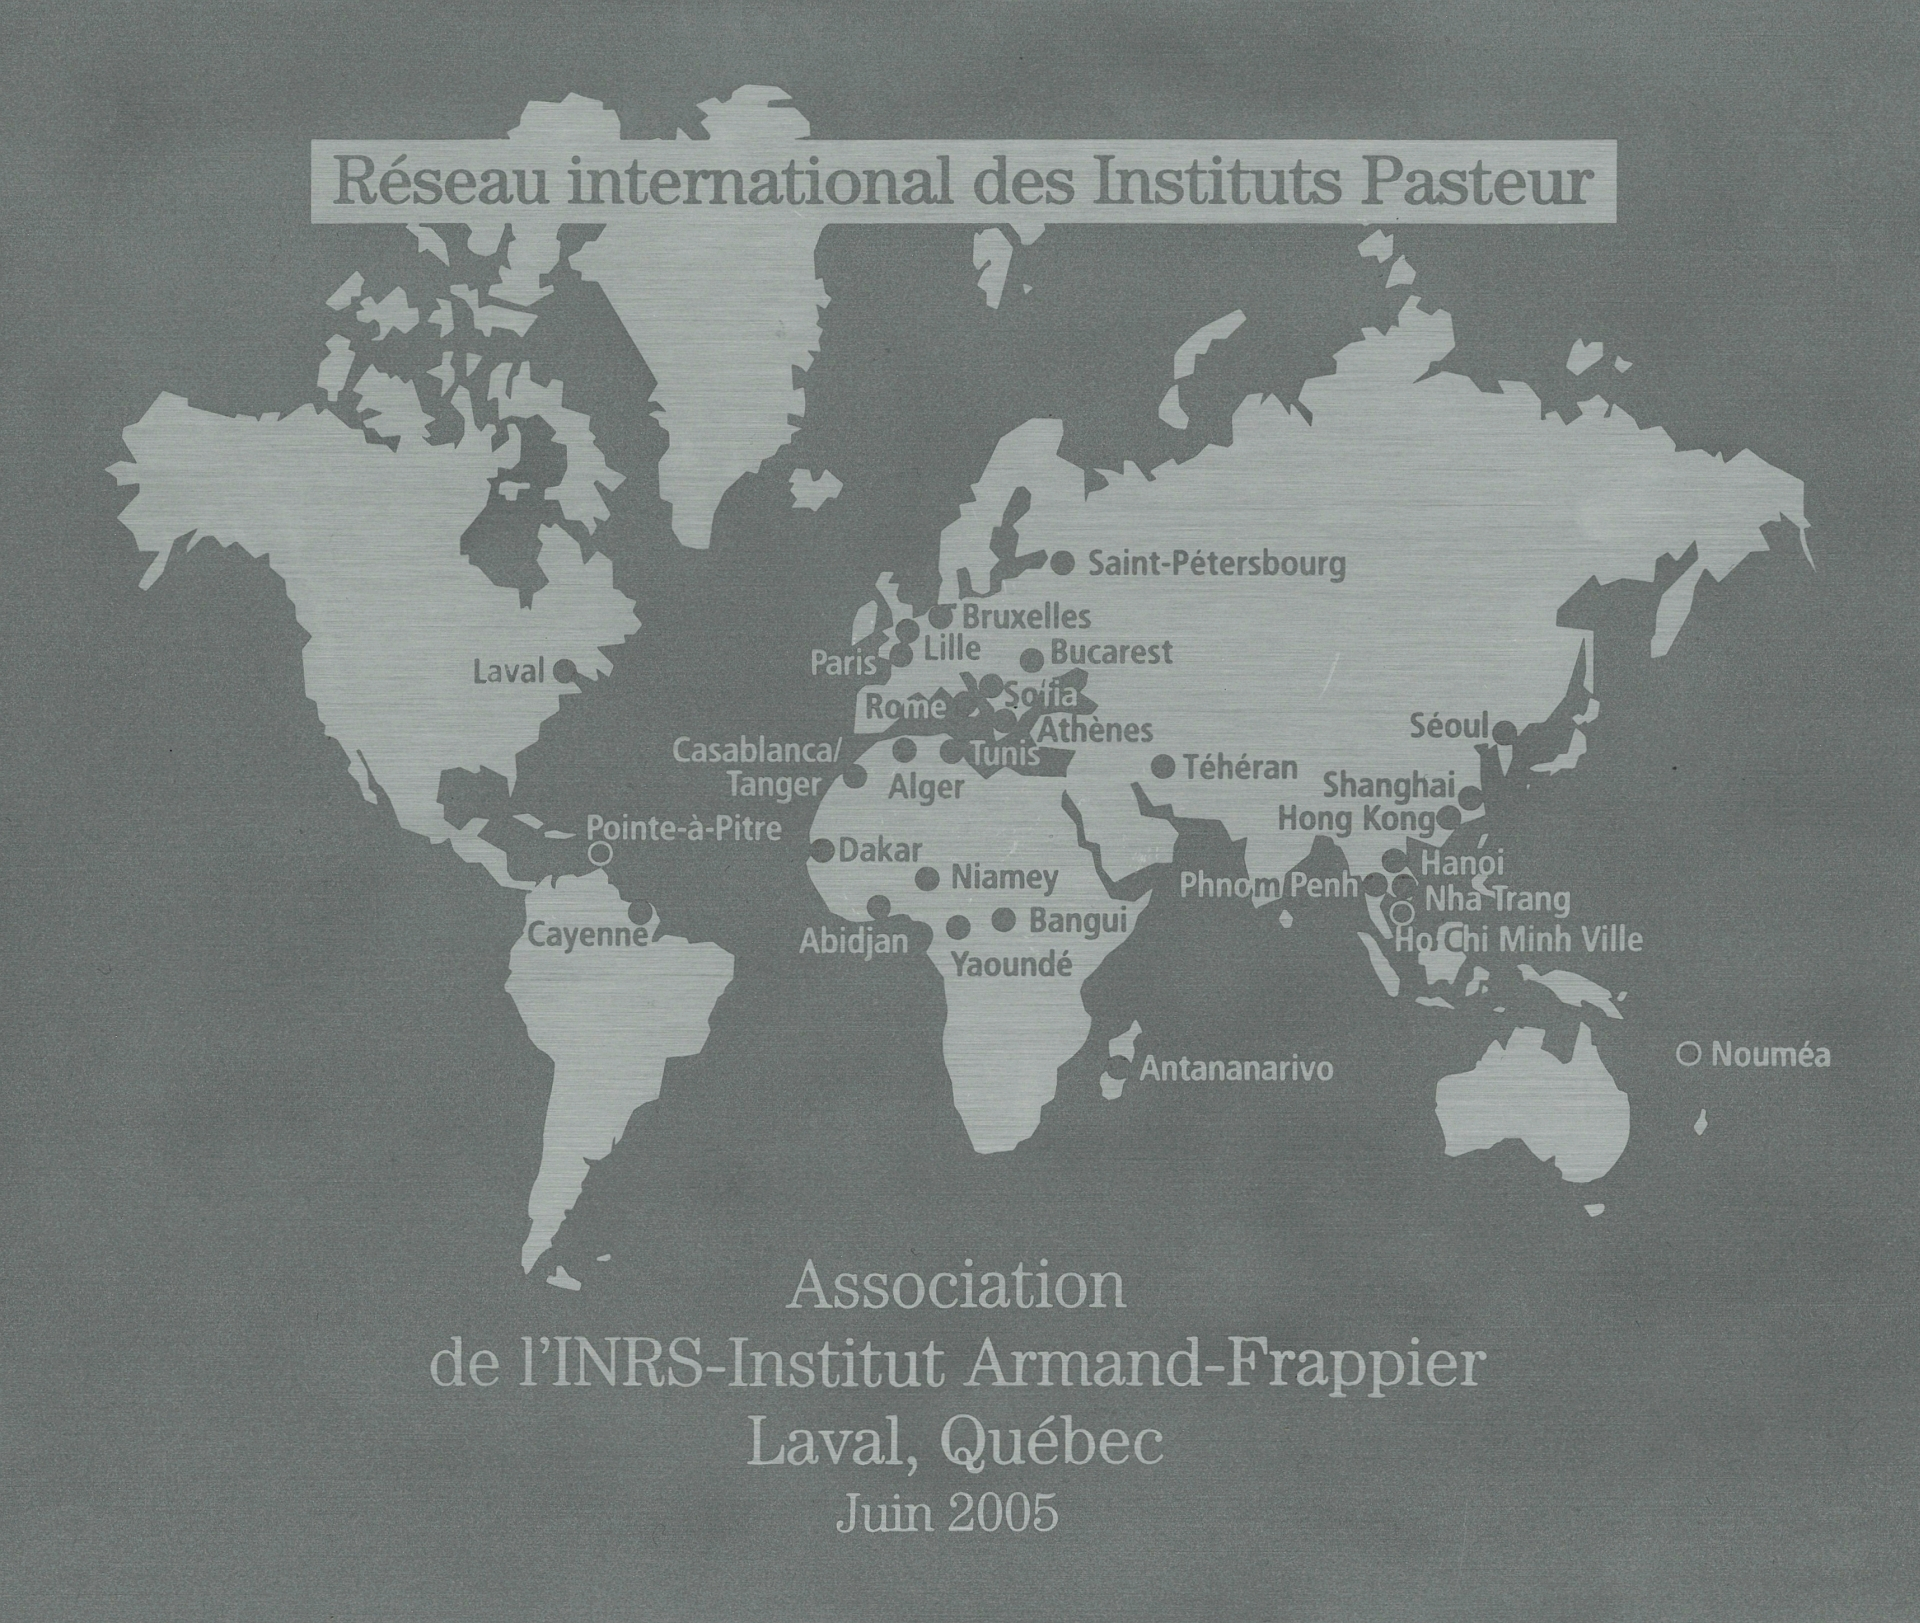 Plaque Réseau international des Instituts Pasteur